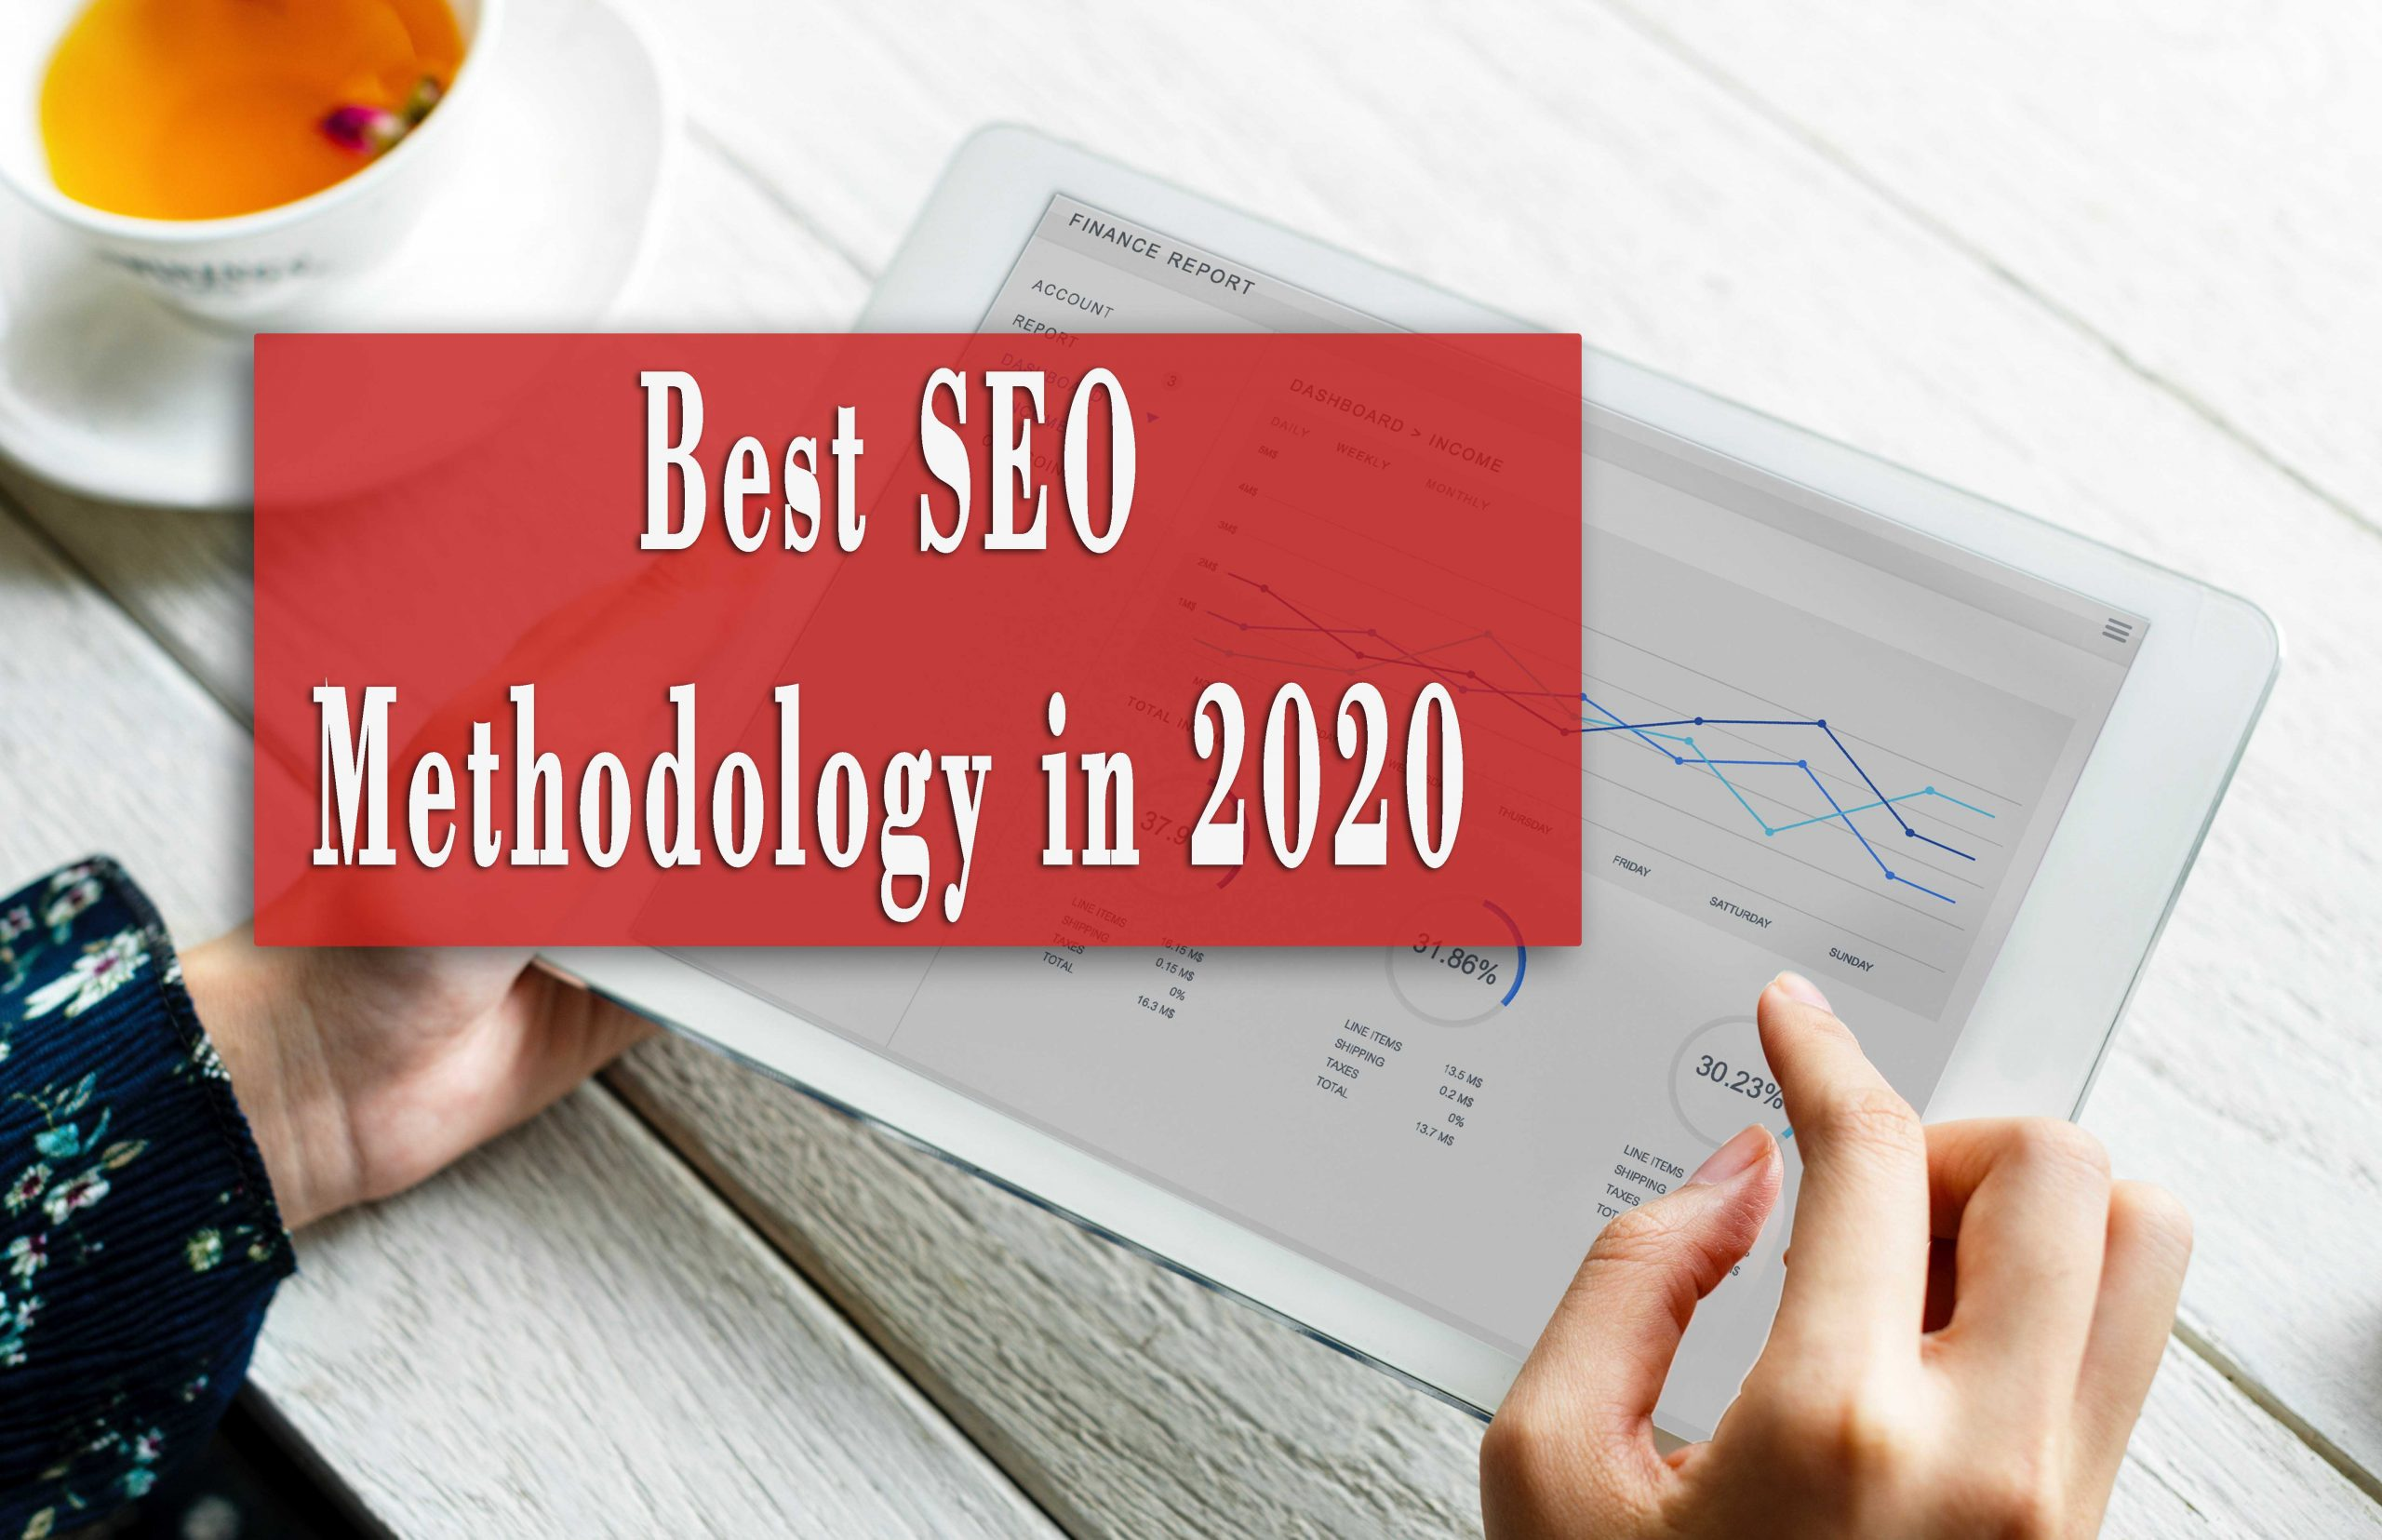 Top 5 Steps of Best SEO Methodology in 2020 | Rank Faster in Google